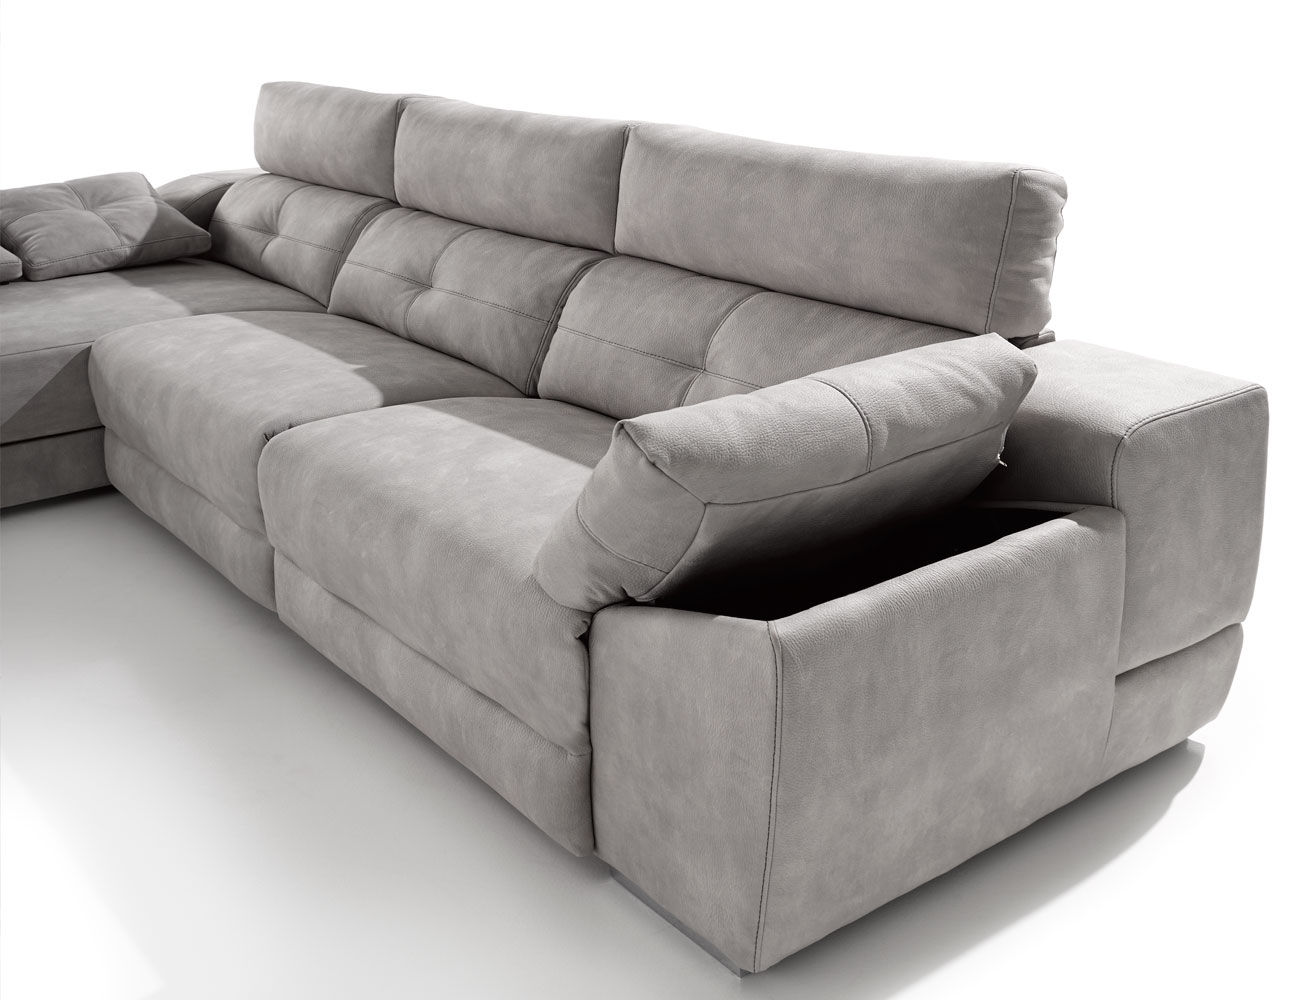 Sof 3 plazas chaiselongue de gama alta top deluxe con for Sofas chaise longue de piel